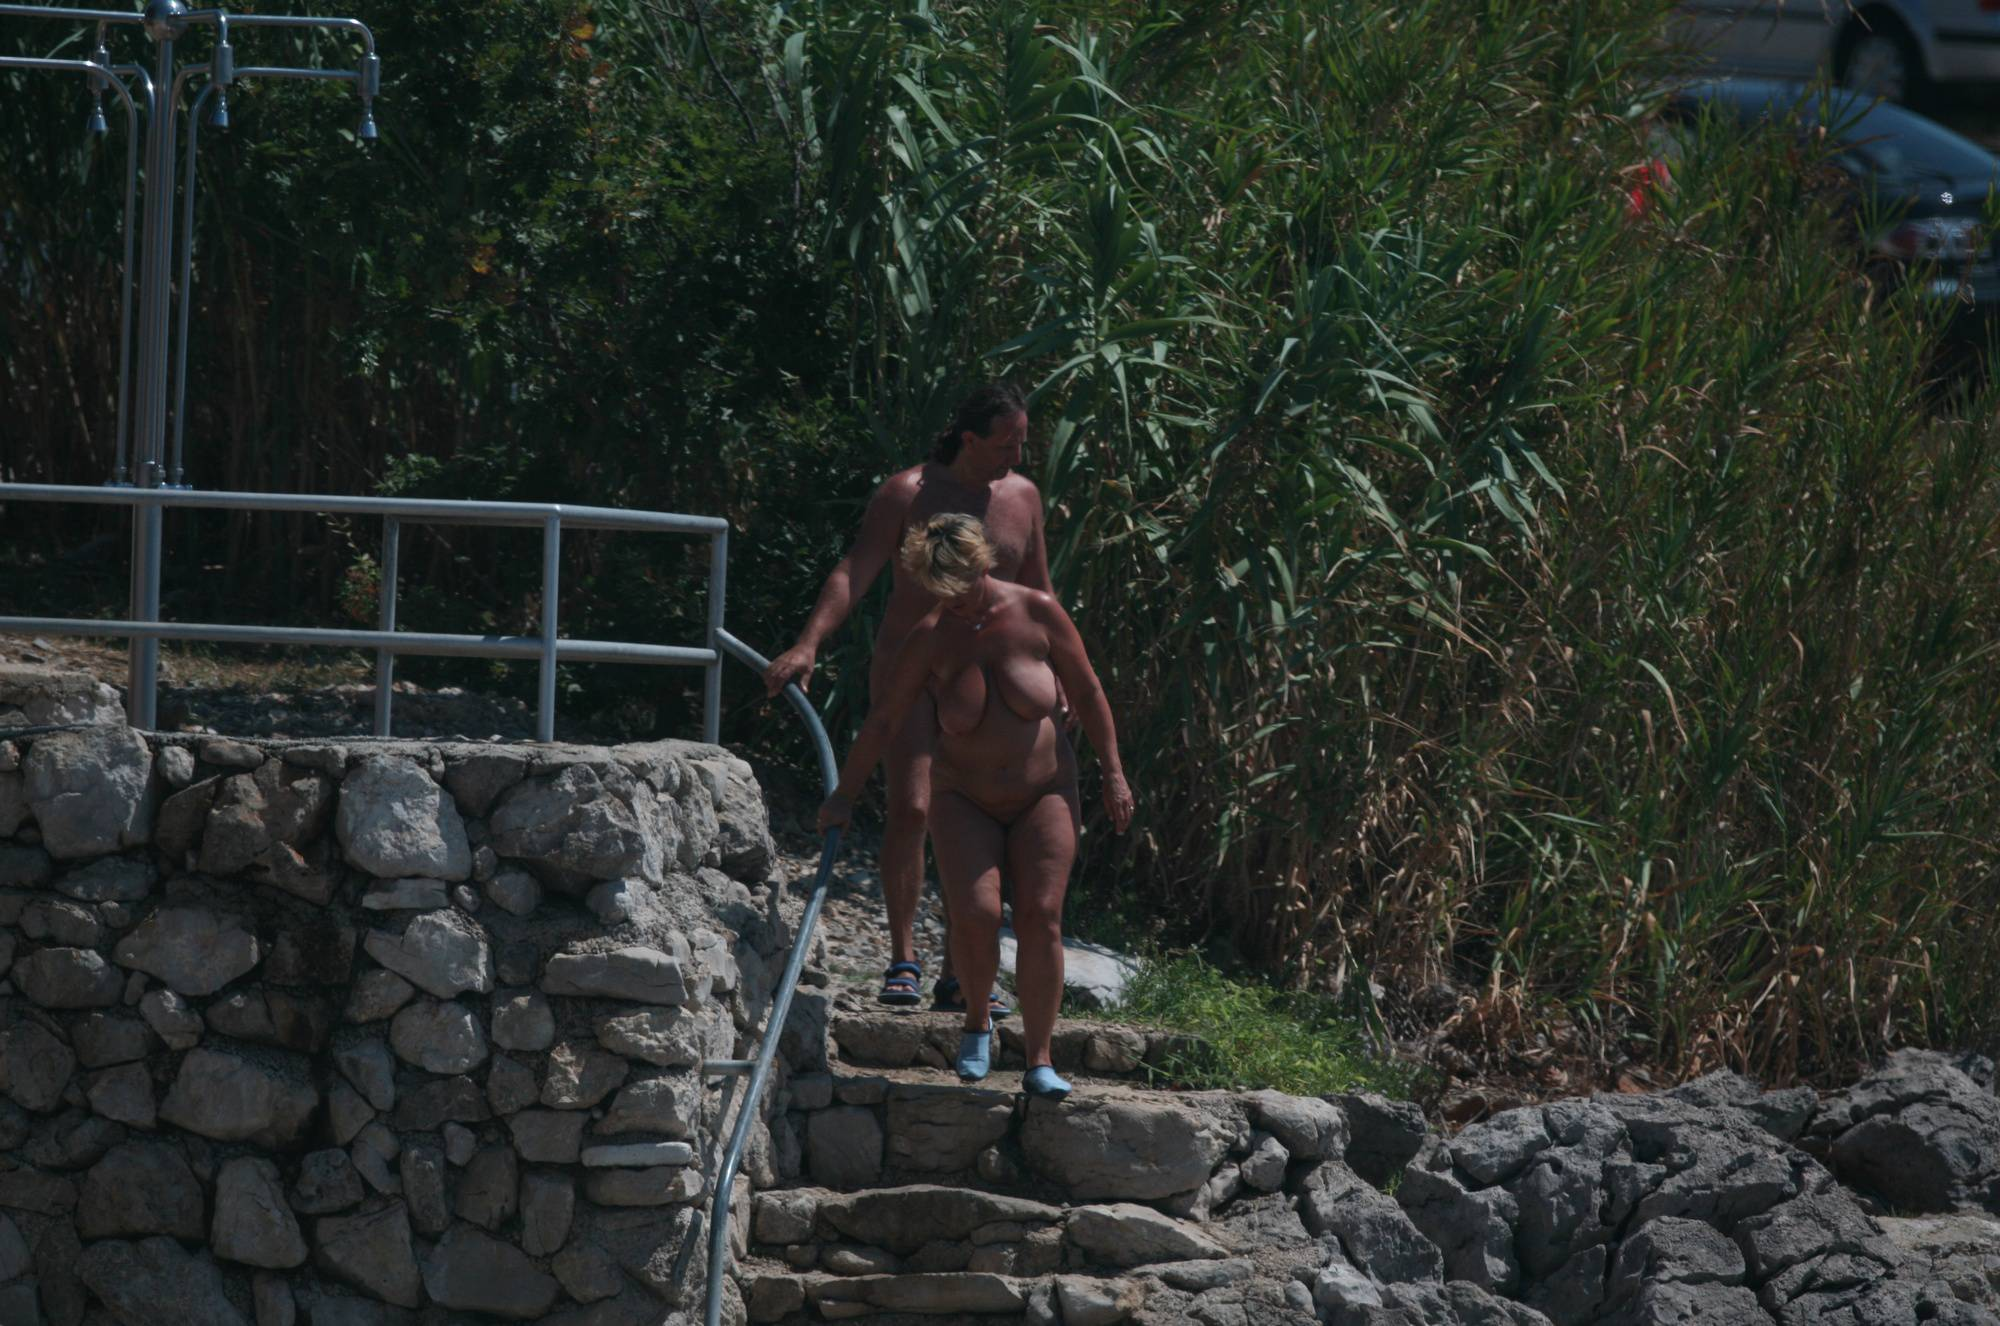 Nudist Pics Cove Public Shower Scene - 1